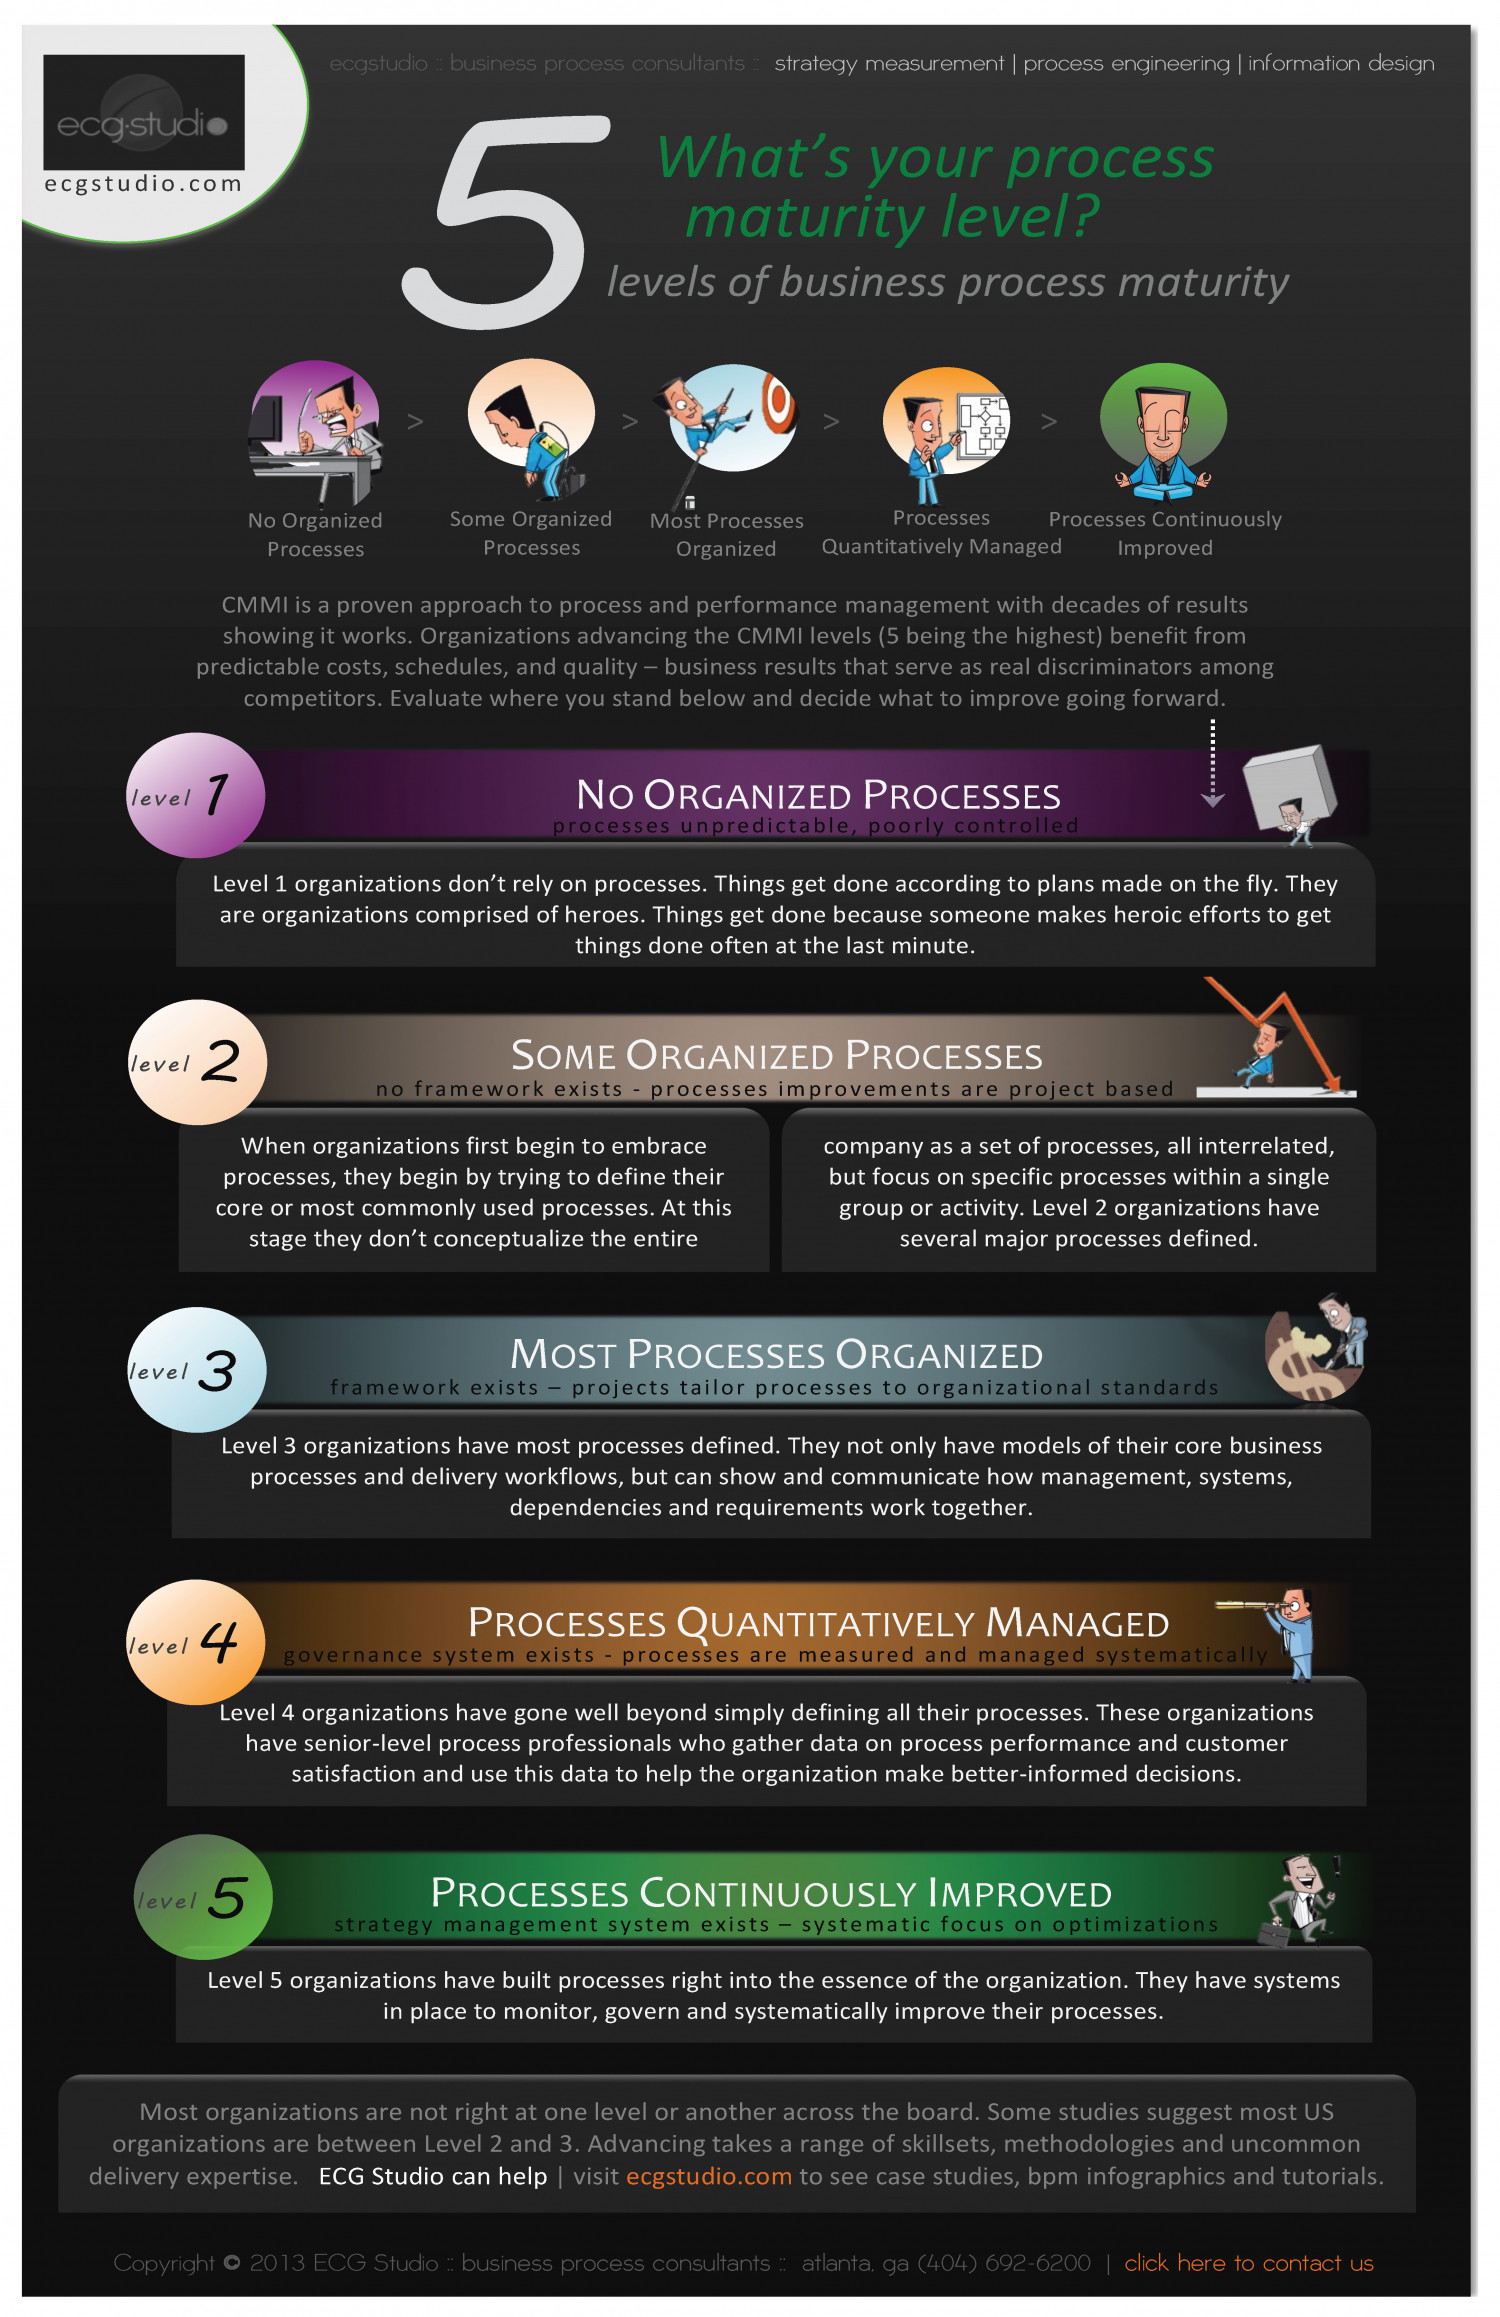 What's your next process maturity-level goal? by @ecgstudio Infographic